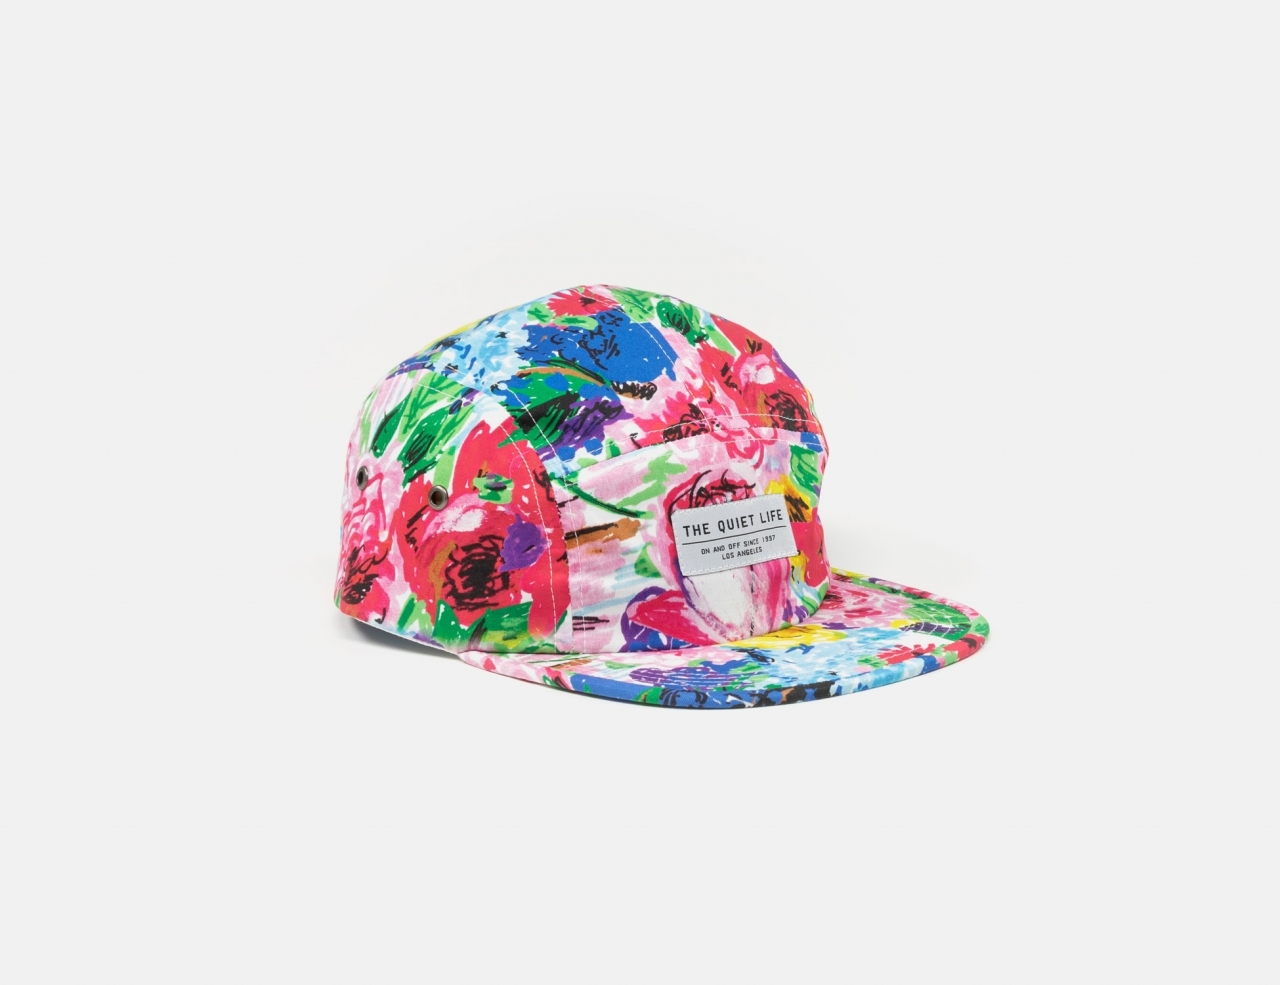 The Quiet Life Take A Break 5 Panel Camper Cap - floral